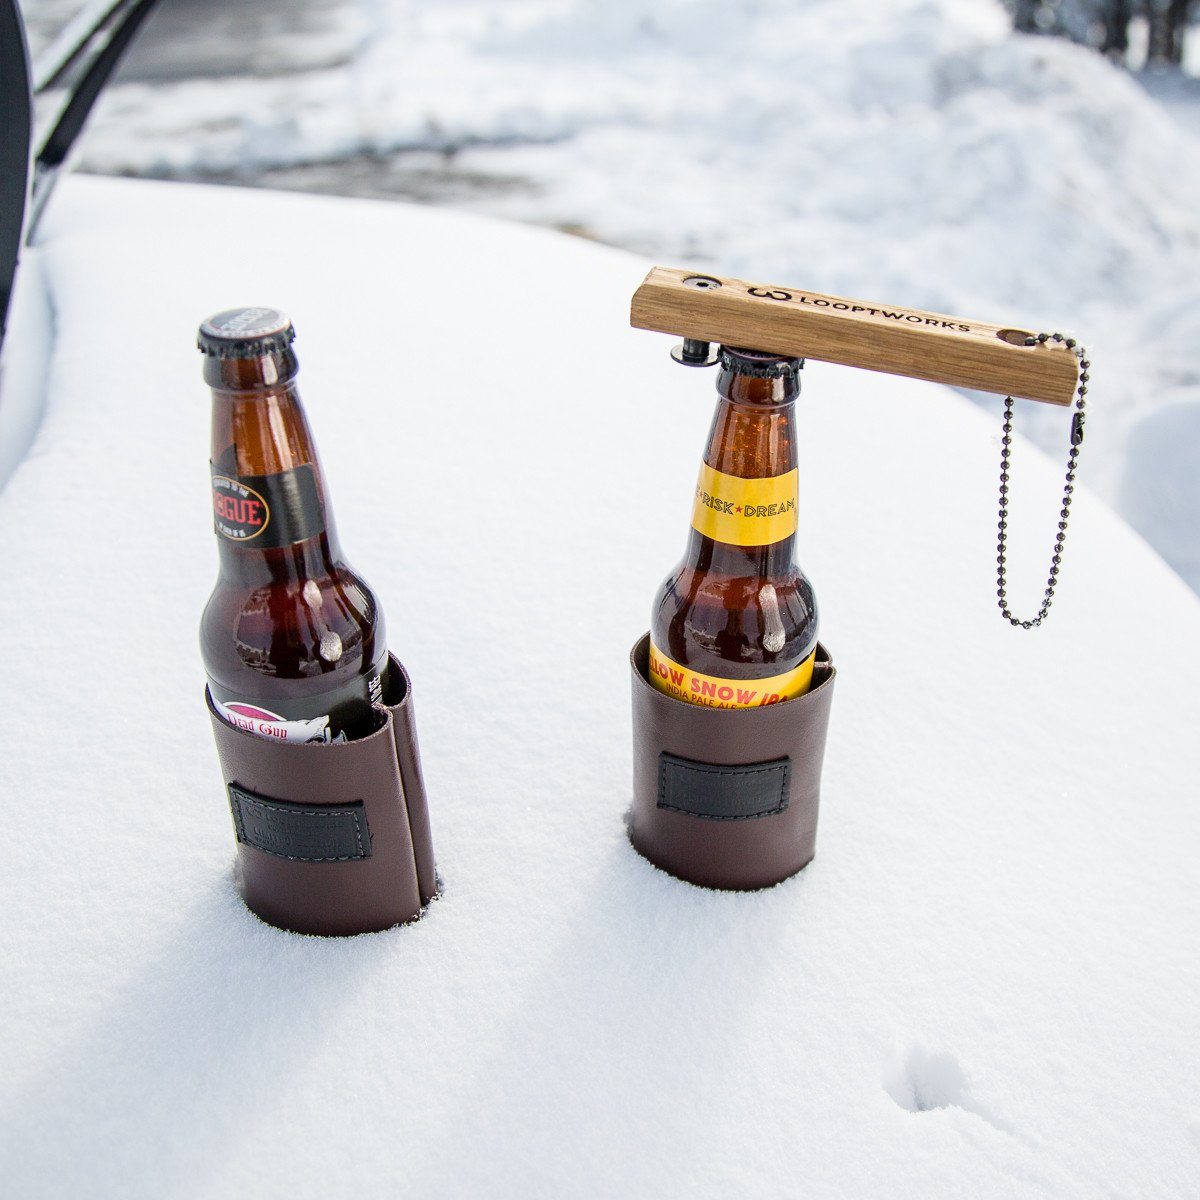 upcycled oak bottle opener and snow cooled beers